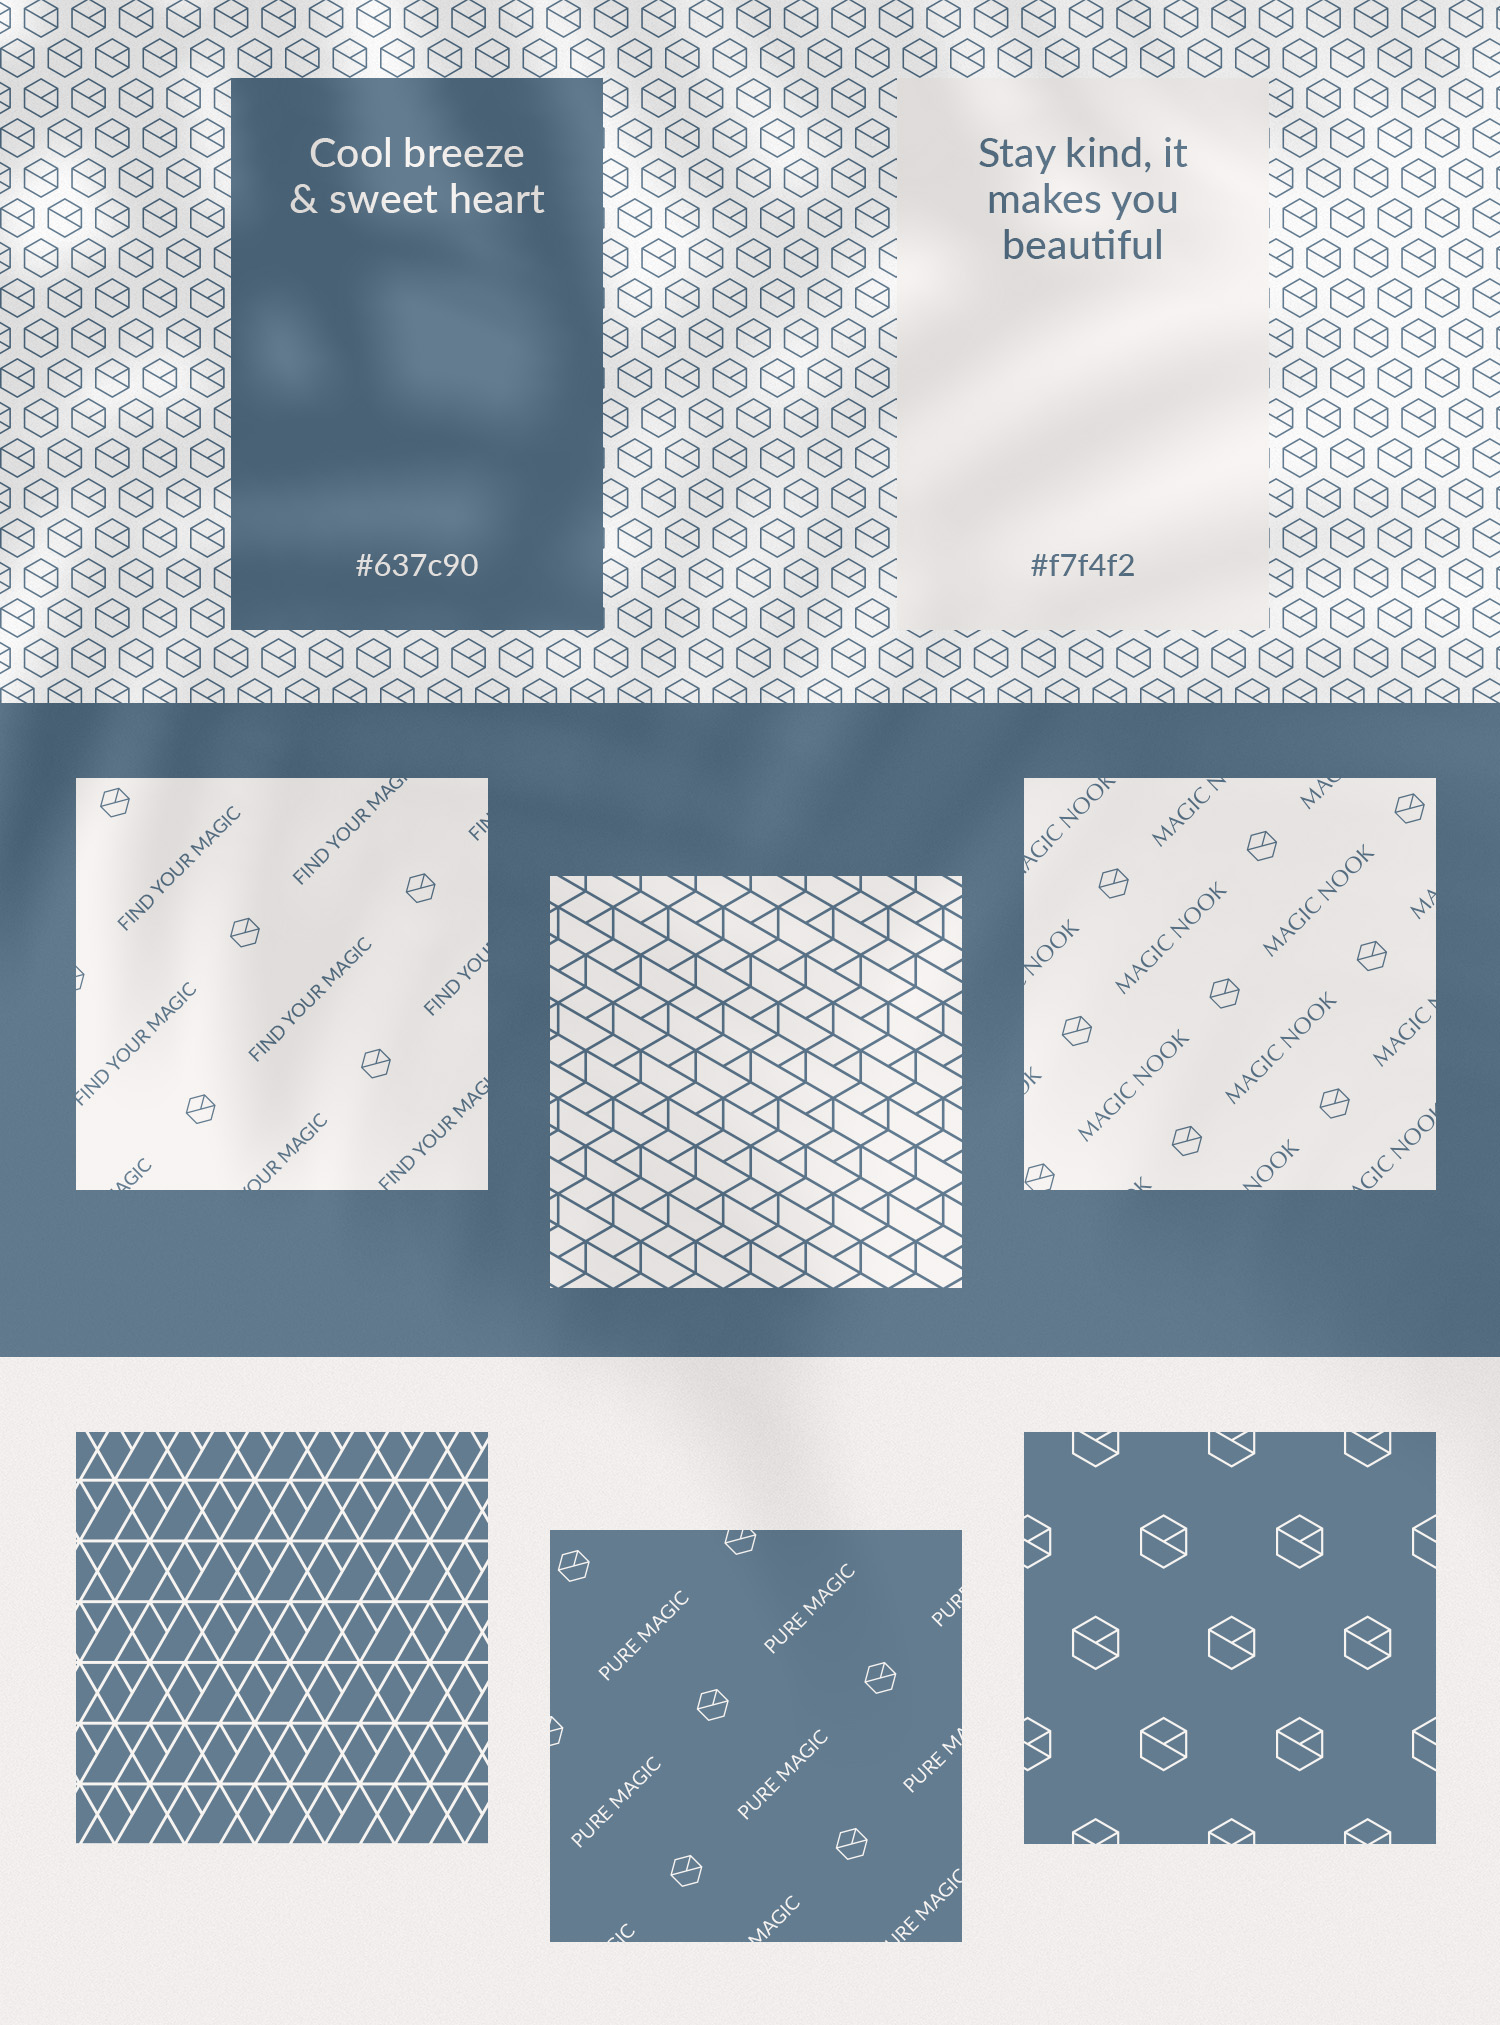 MAGIC NOOK Visual Identity 04 - Primary color palette and patterns